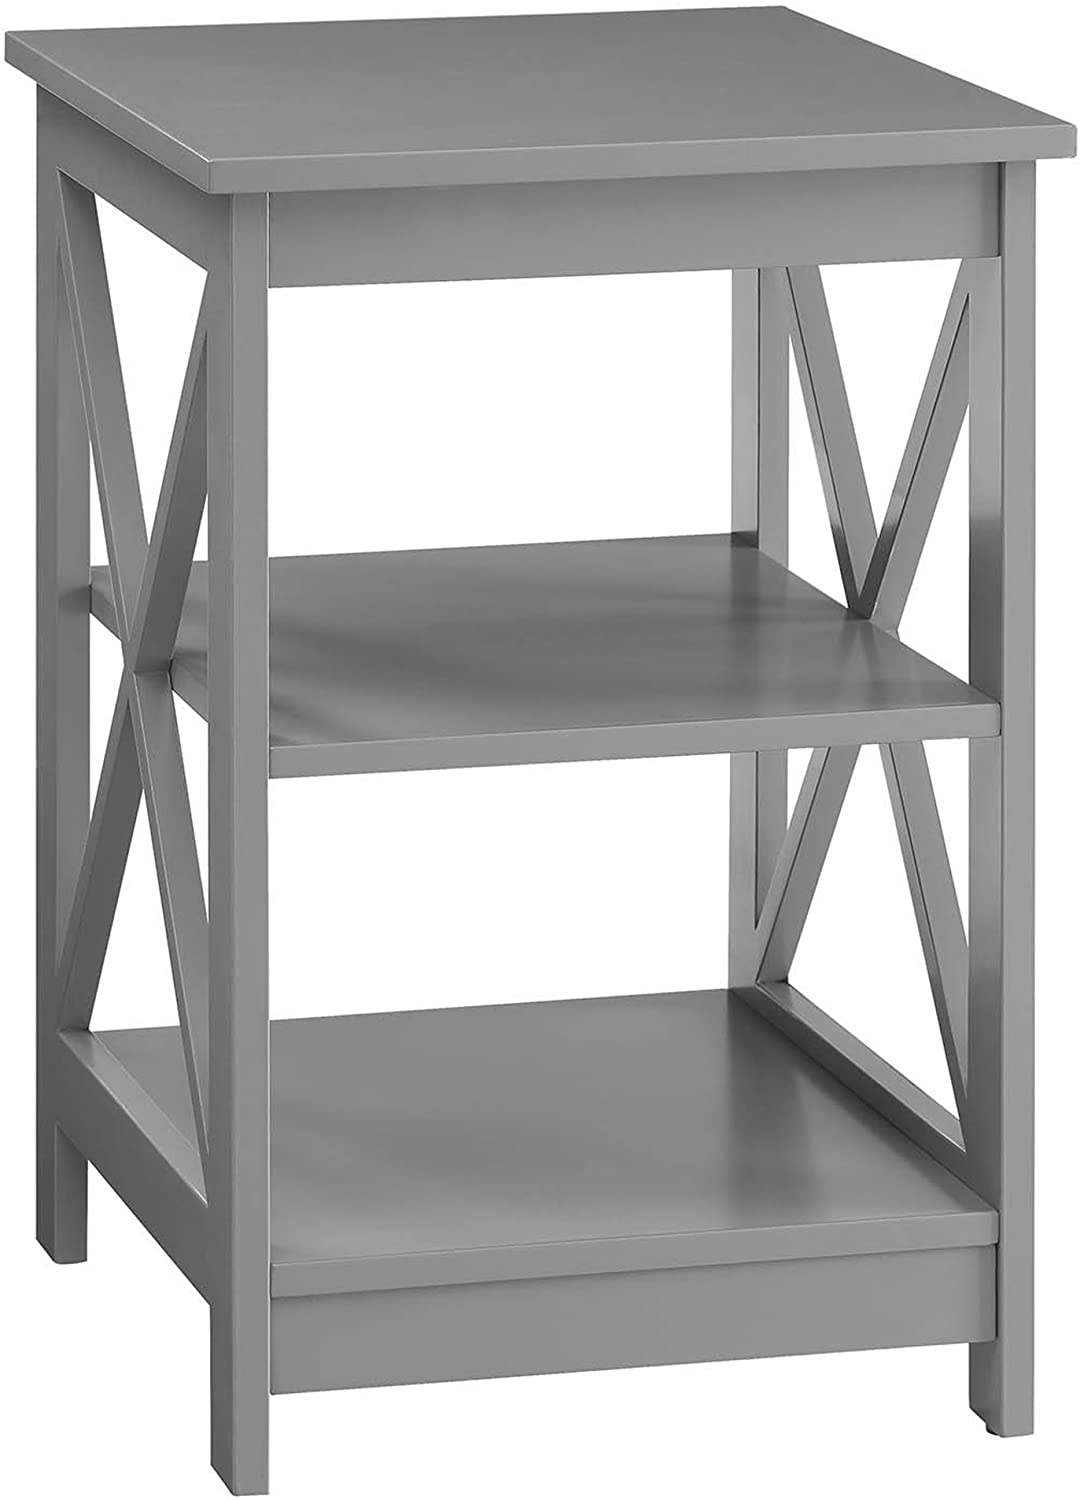 Convenience Concepts Oxford End Table, Gray: Kitchen & Dining